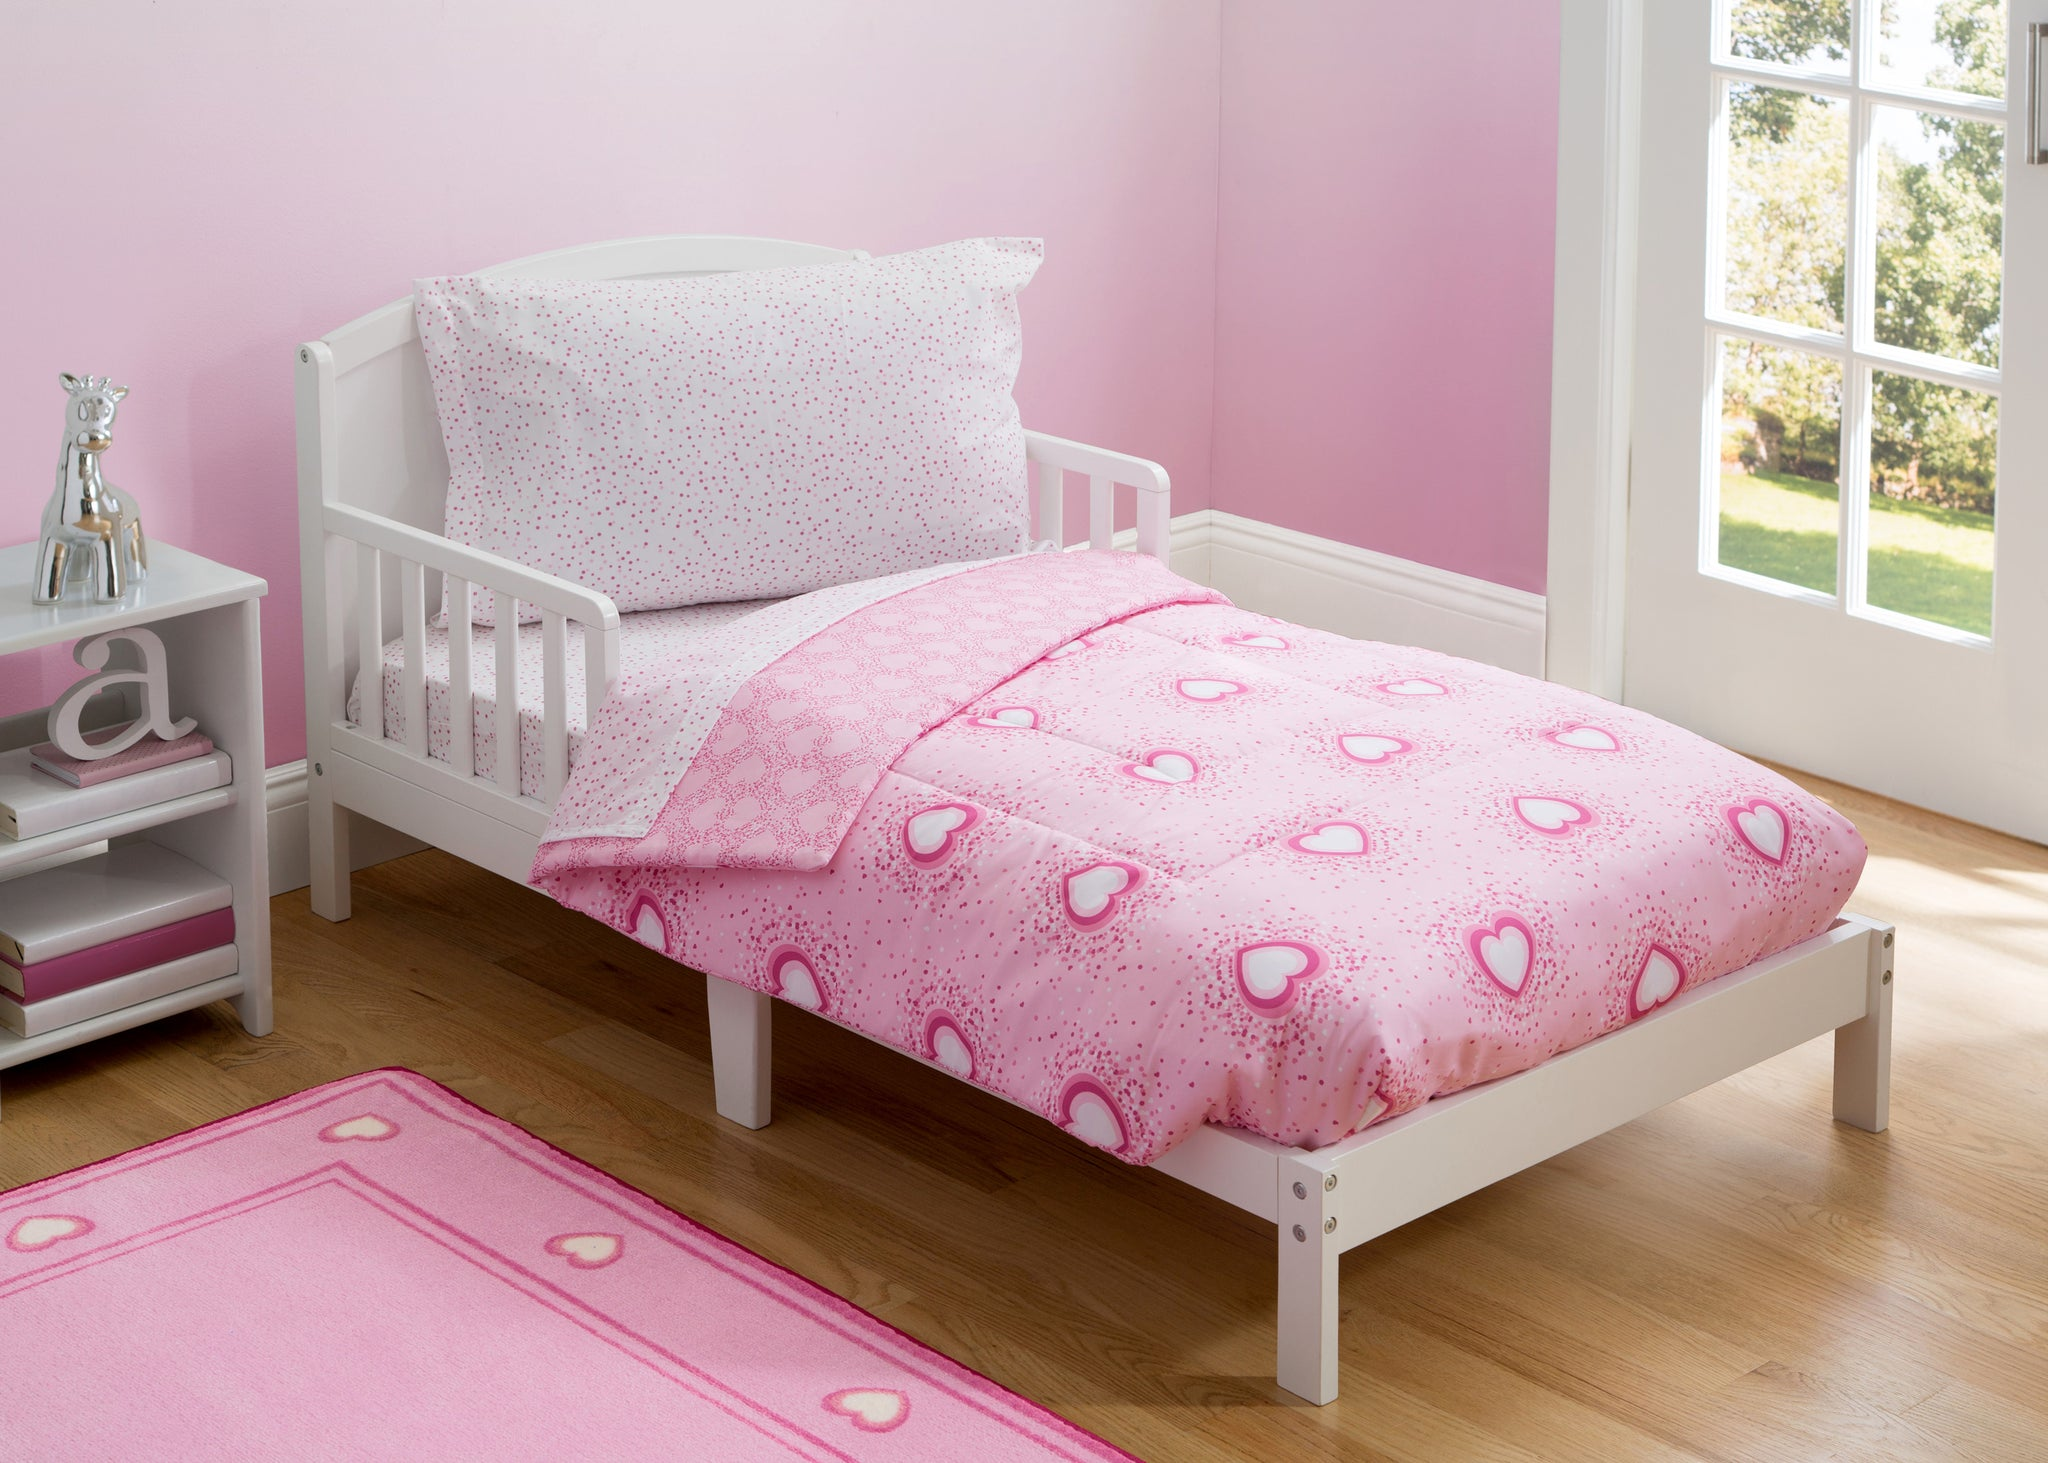 Girl 4-Piece Toddler Bedding Set, Hearts & Sprinkles (2002) b1b